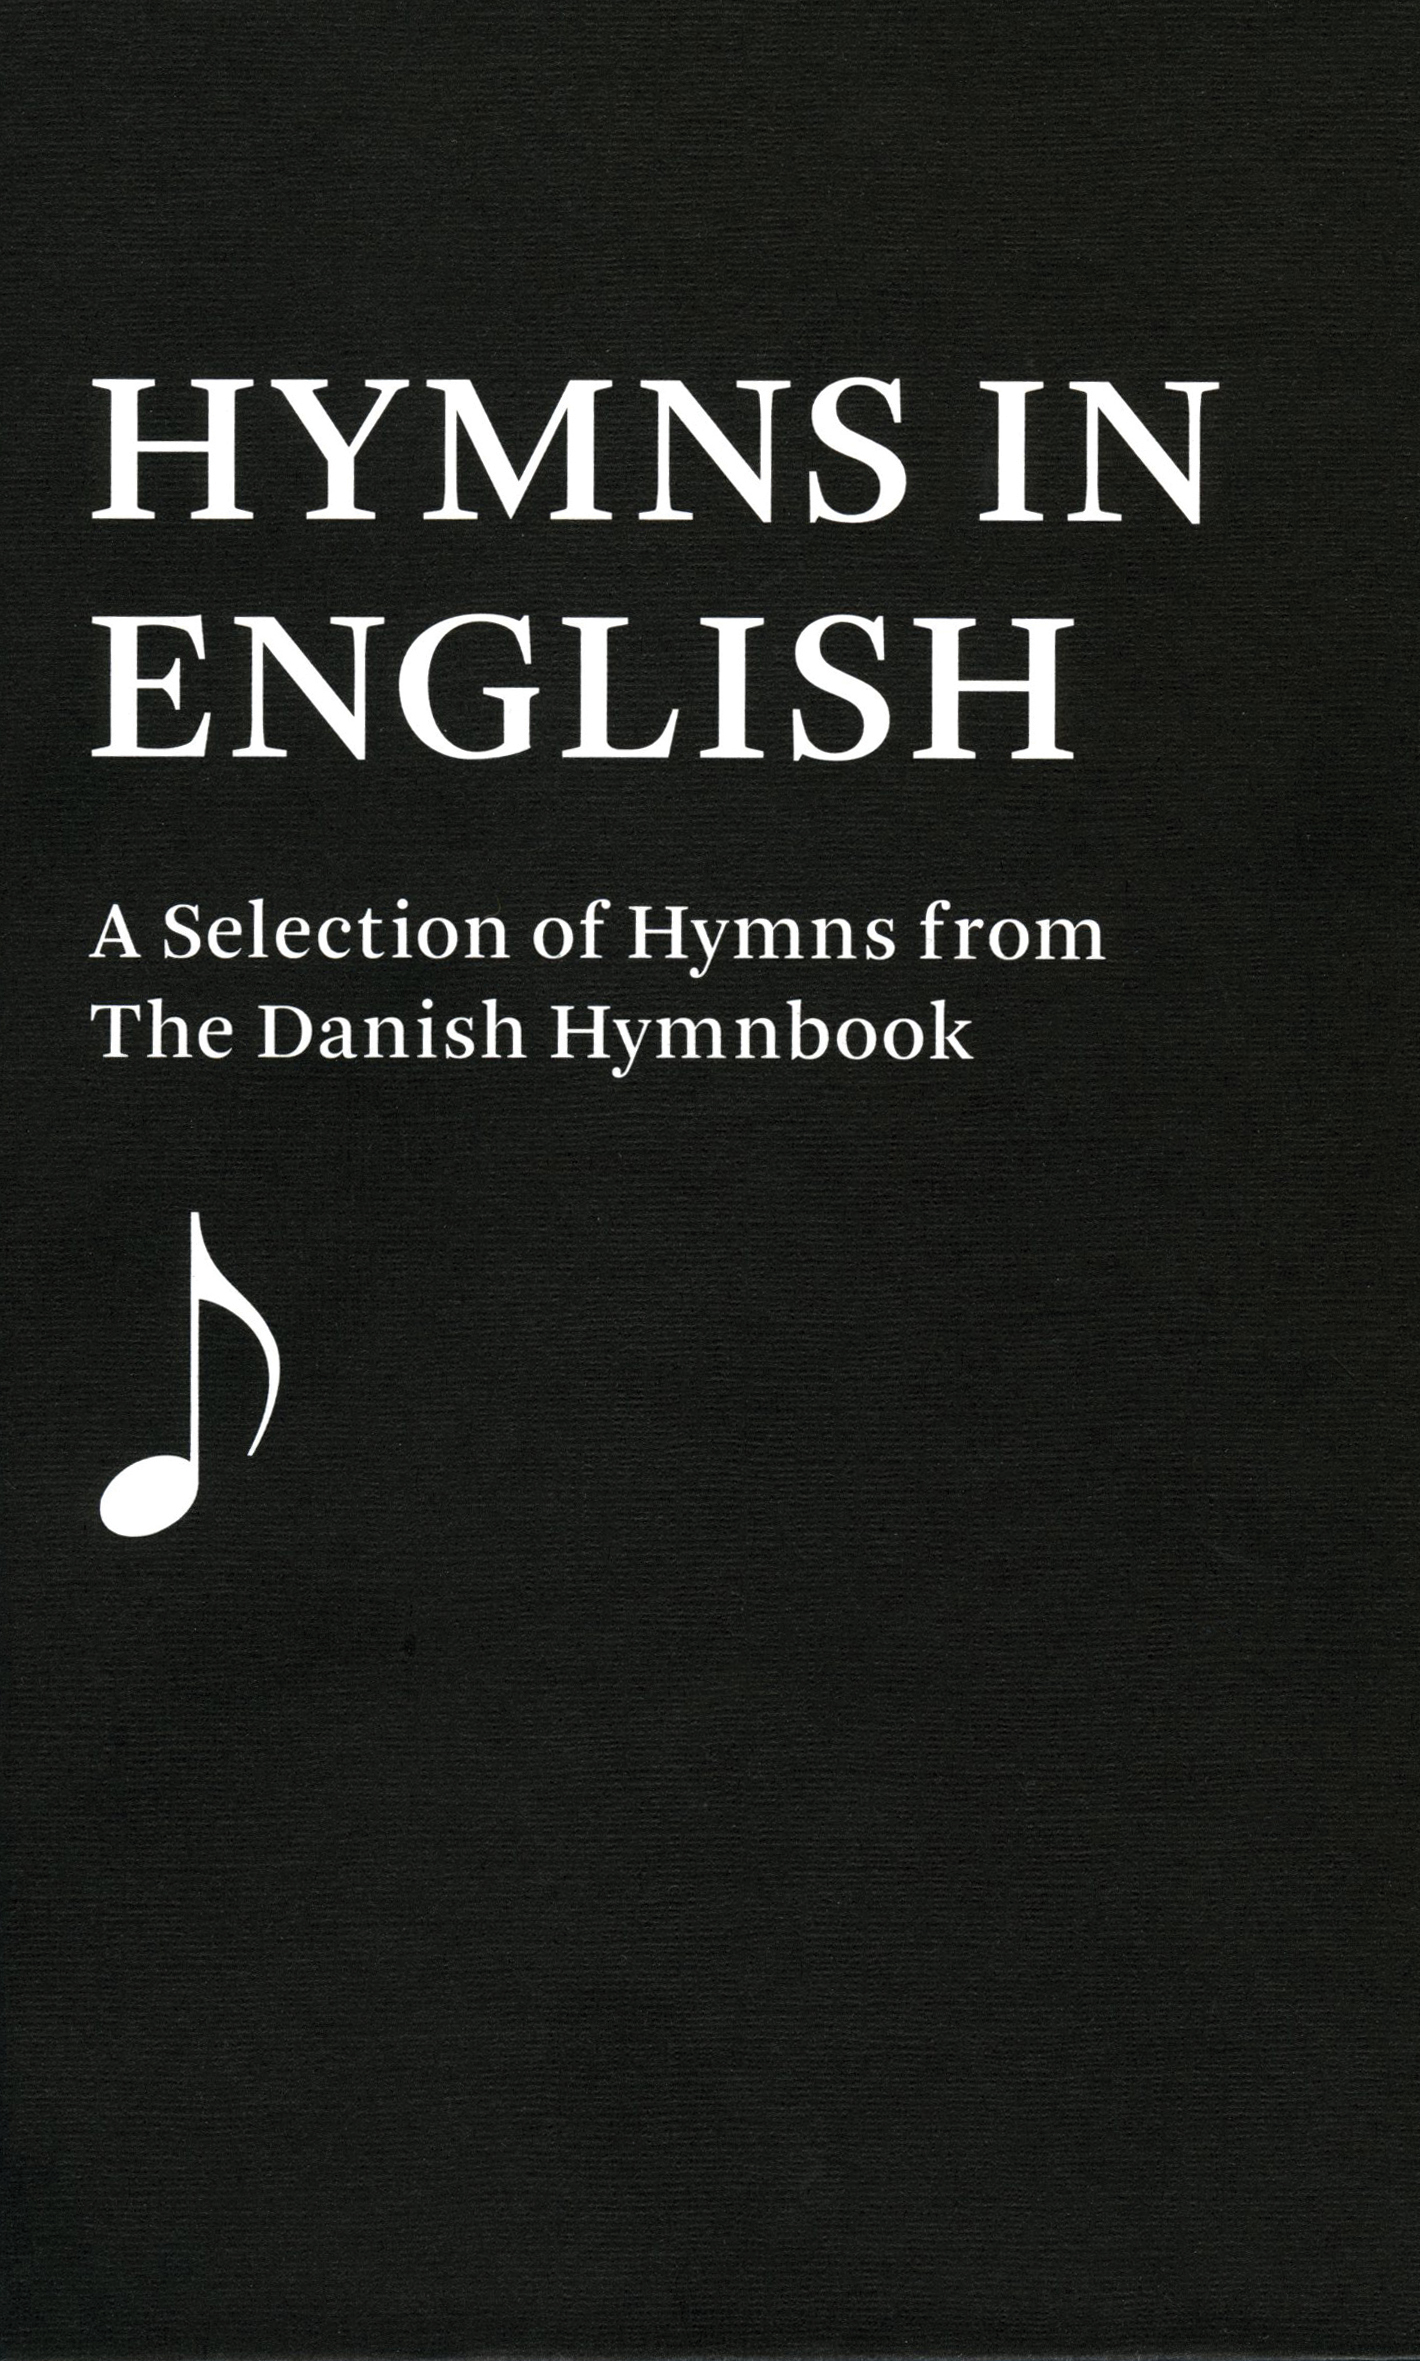 Hymns in English